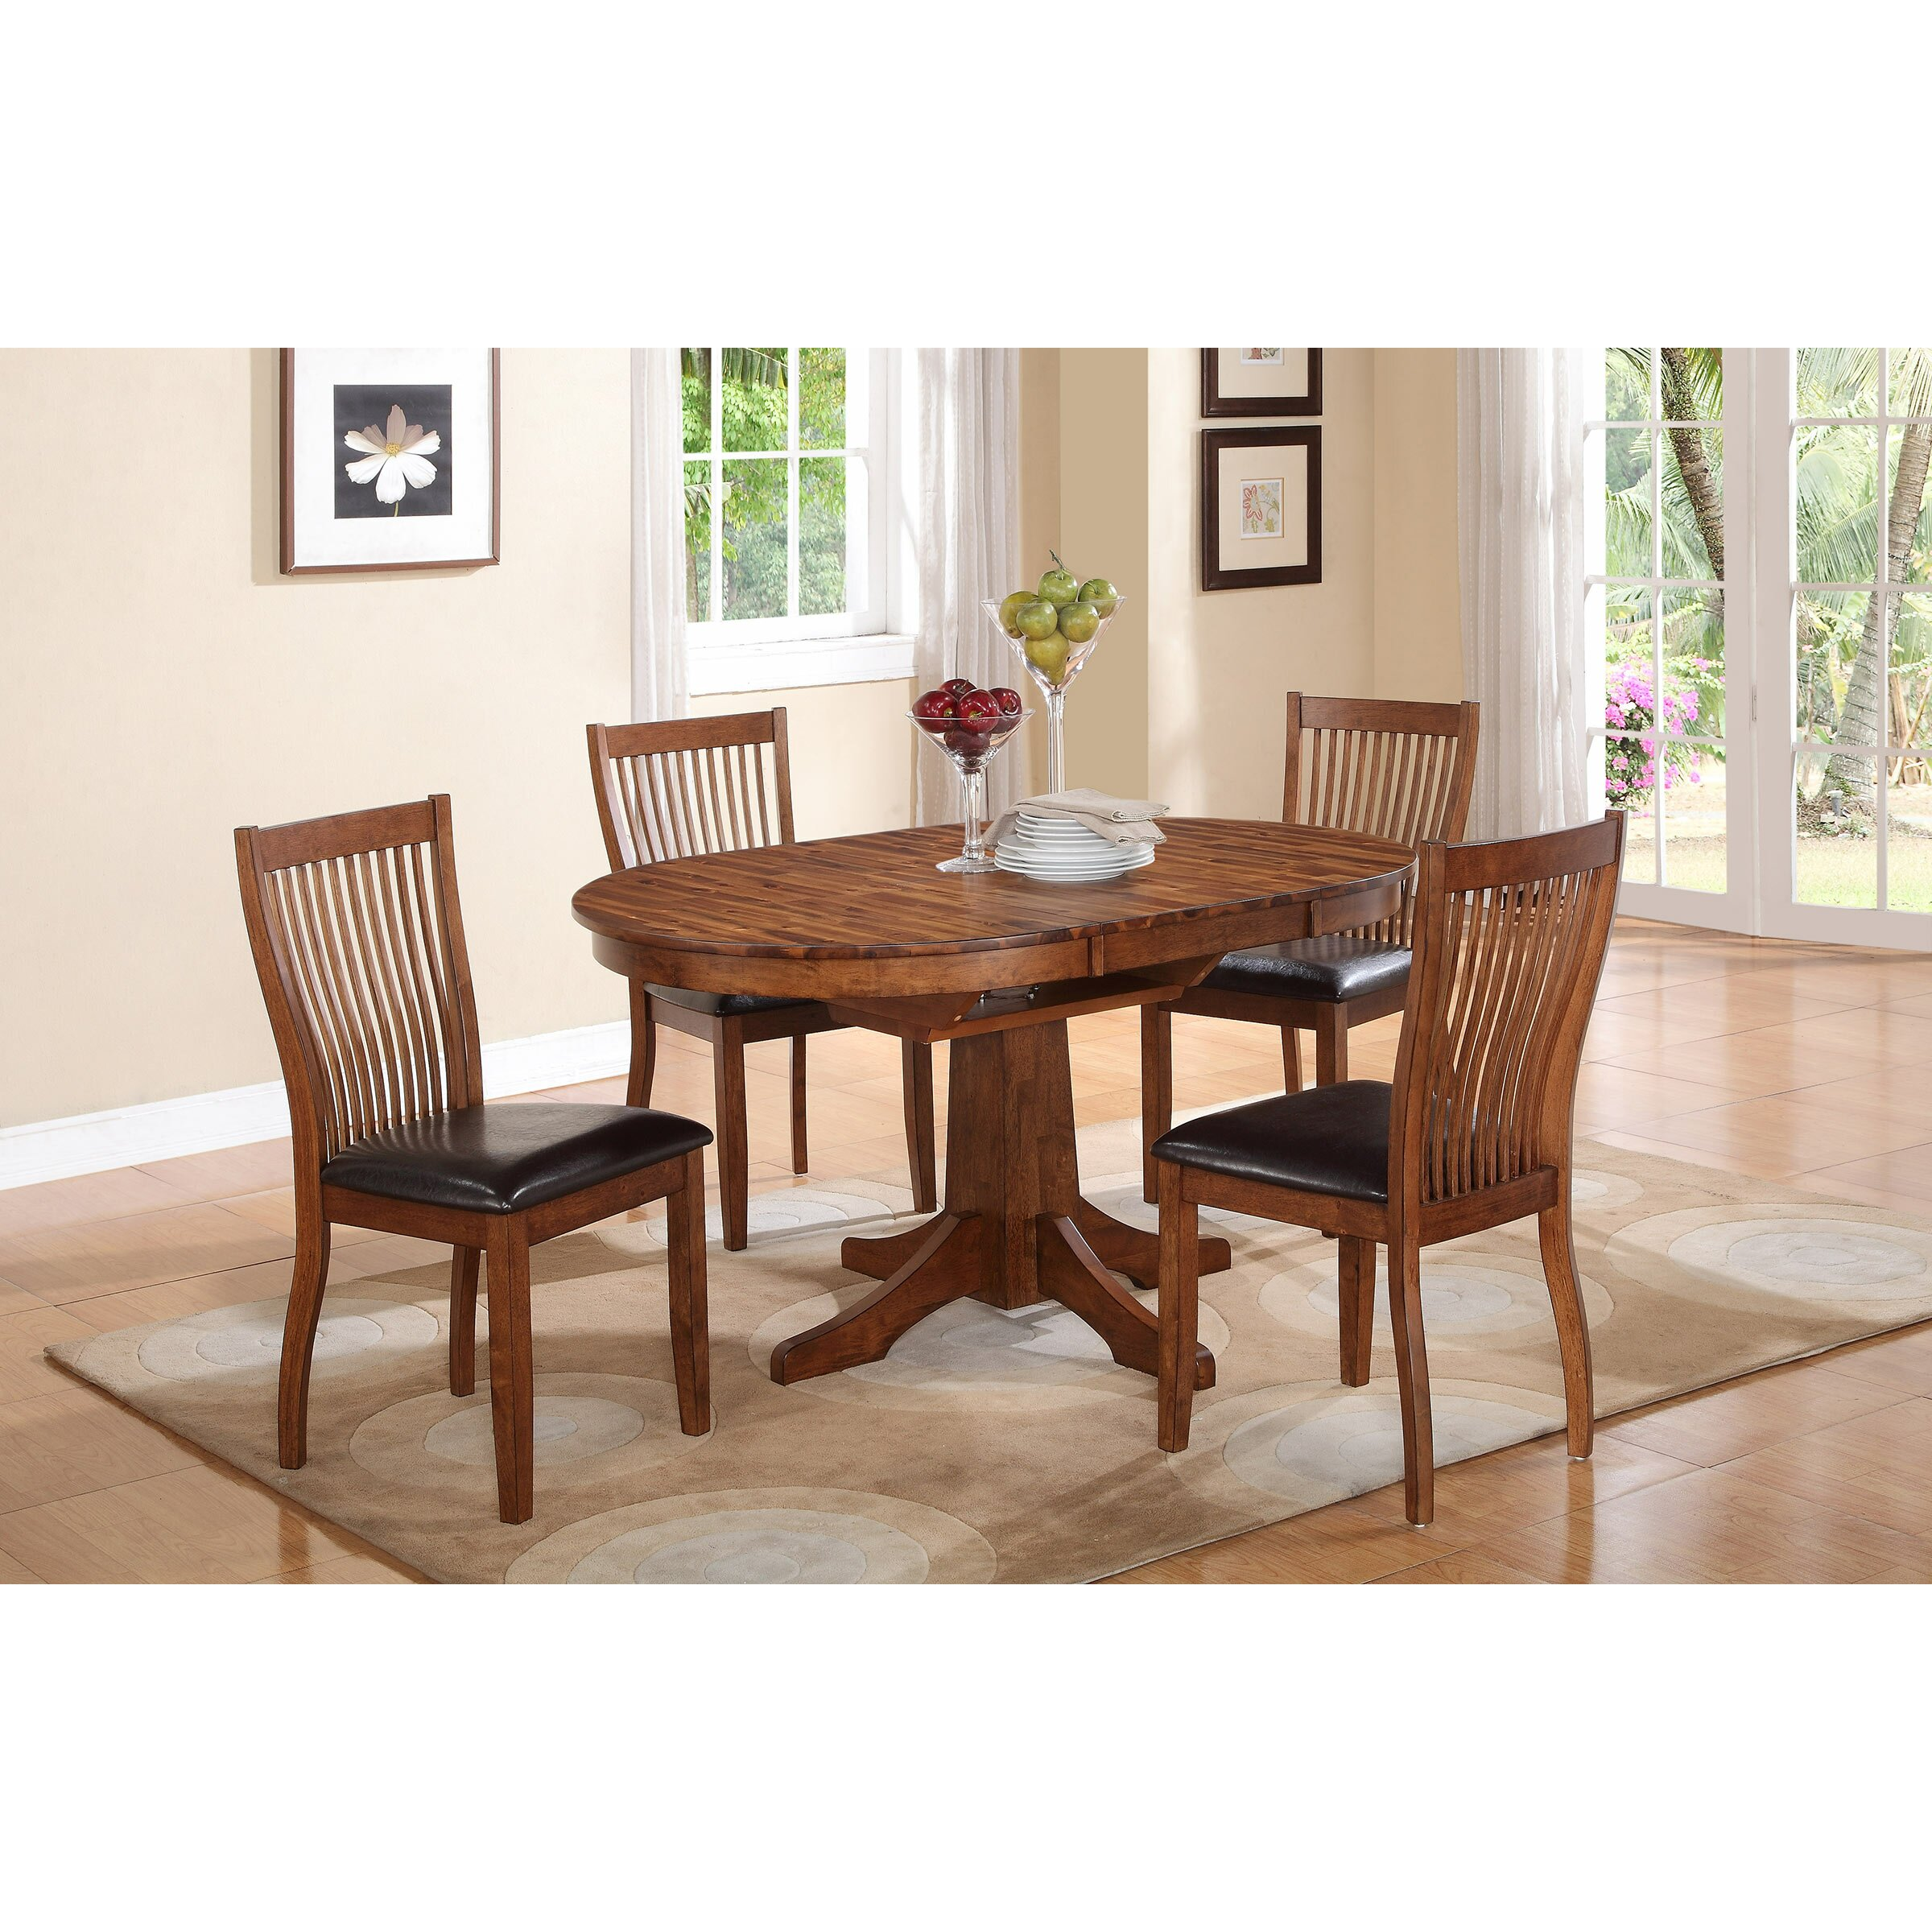 Napa Gathering Collection Winners Only Inc Broadway Piece Dining Set Dfb